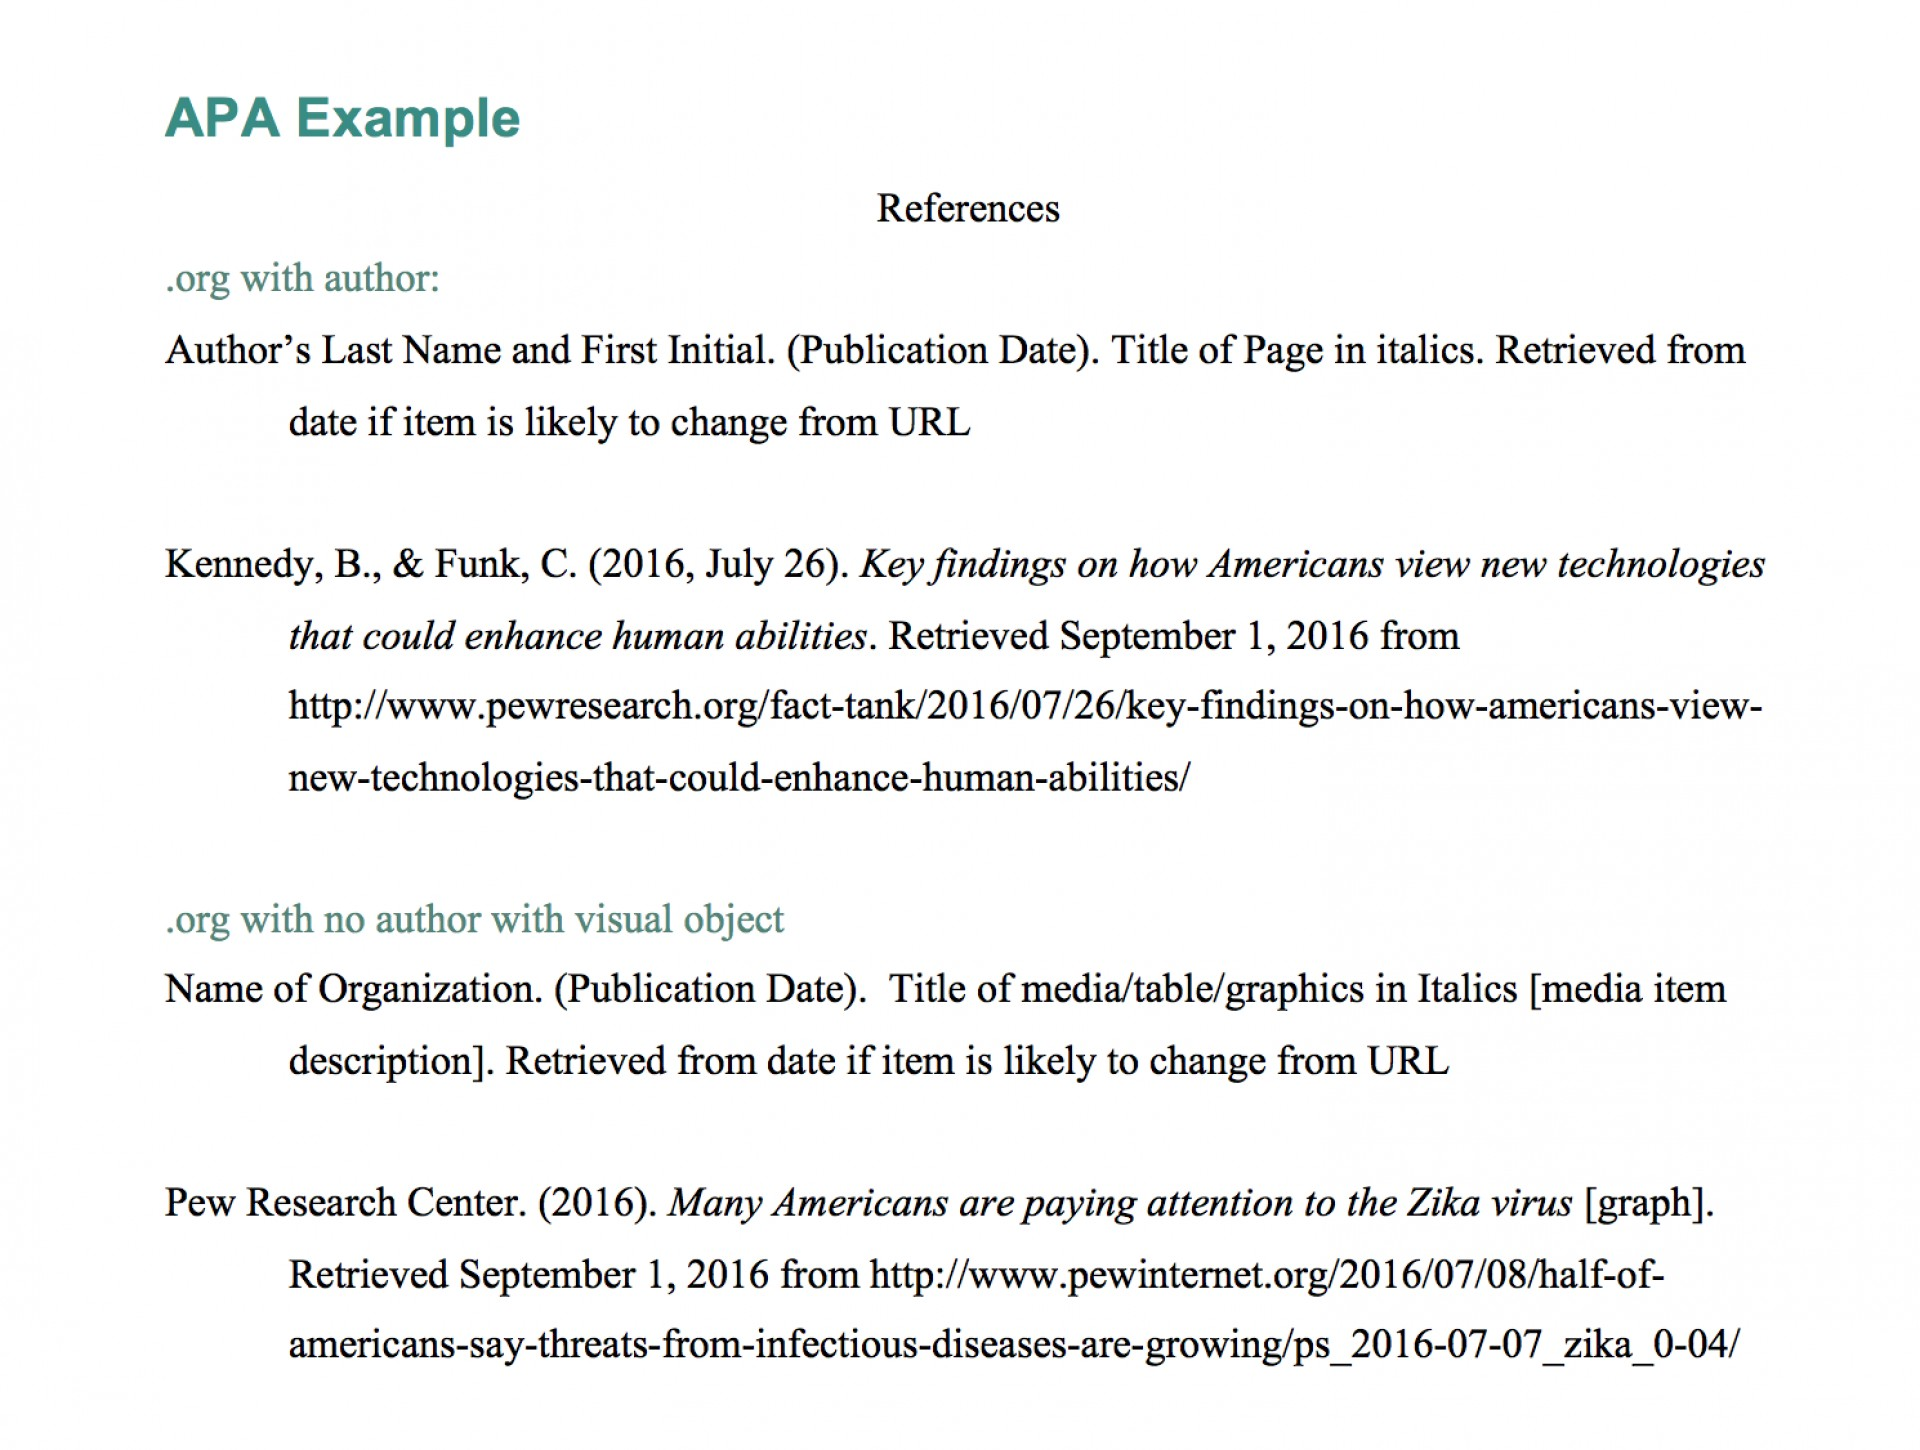 010 Apat Works Cited Page Example Images Any Ideas Chic Style Internet References Examples Citation Source Of Impressive Apa Format Reference Generator Sample 1920